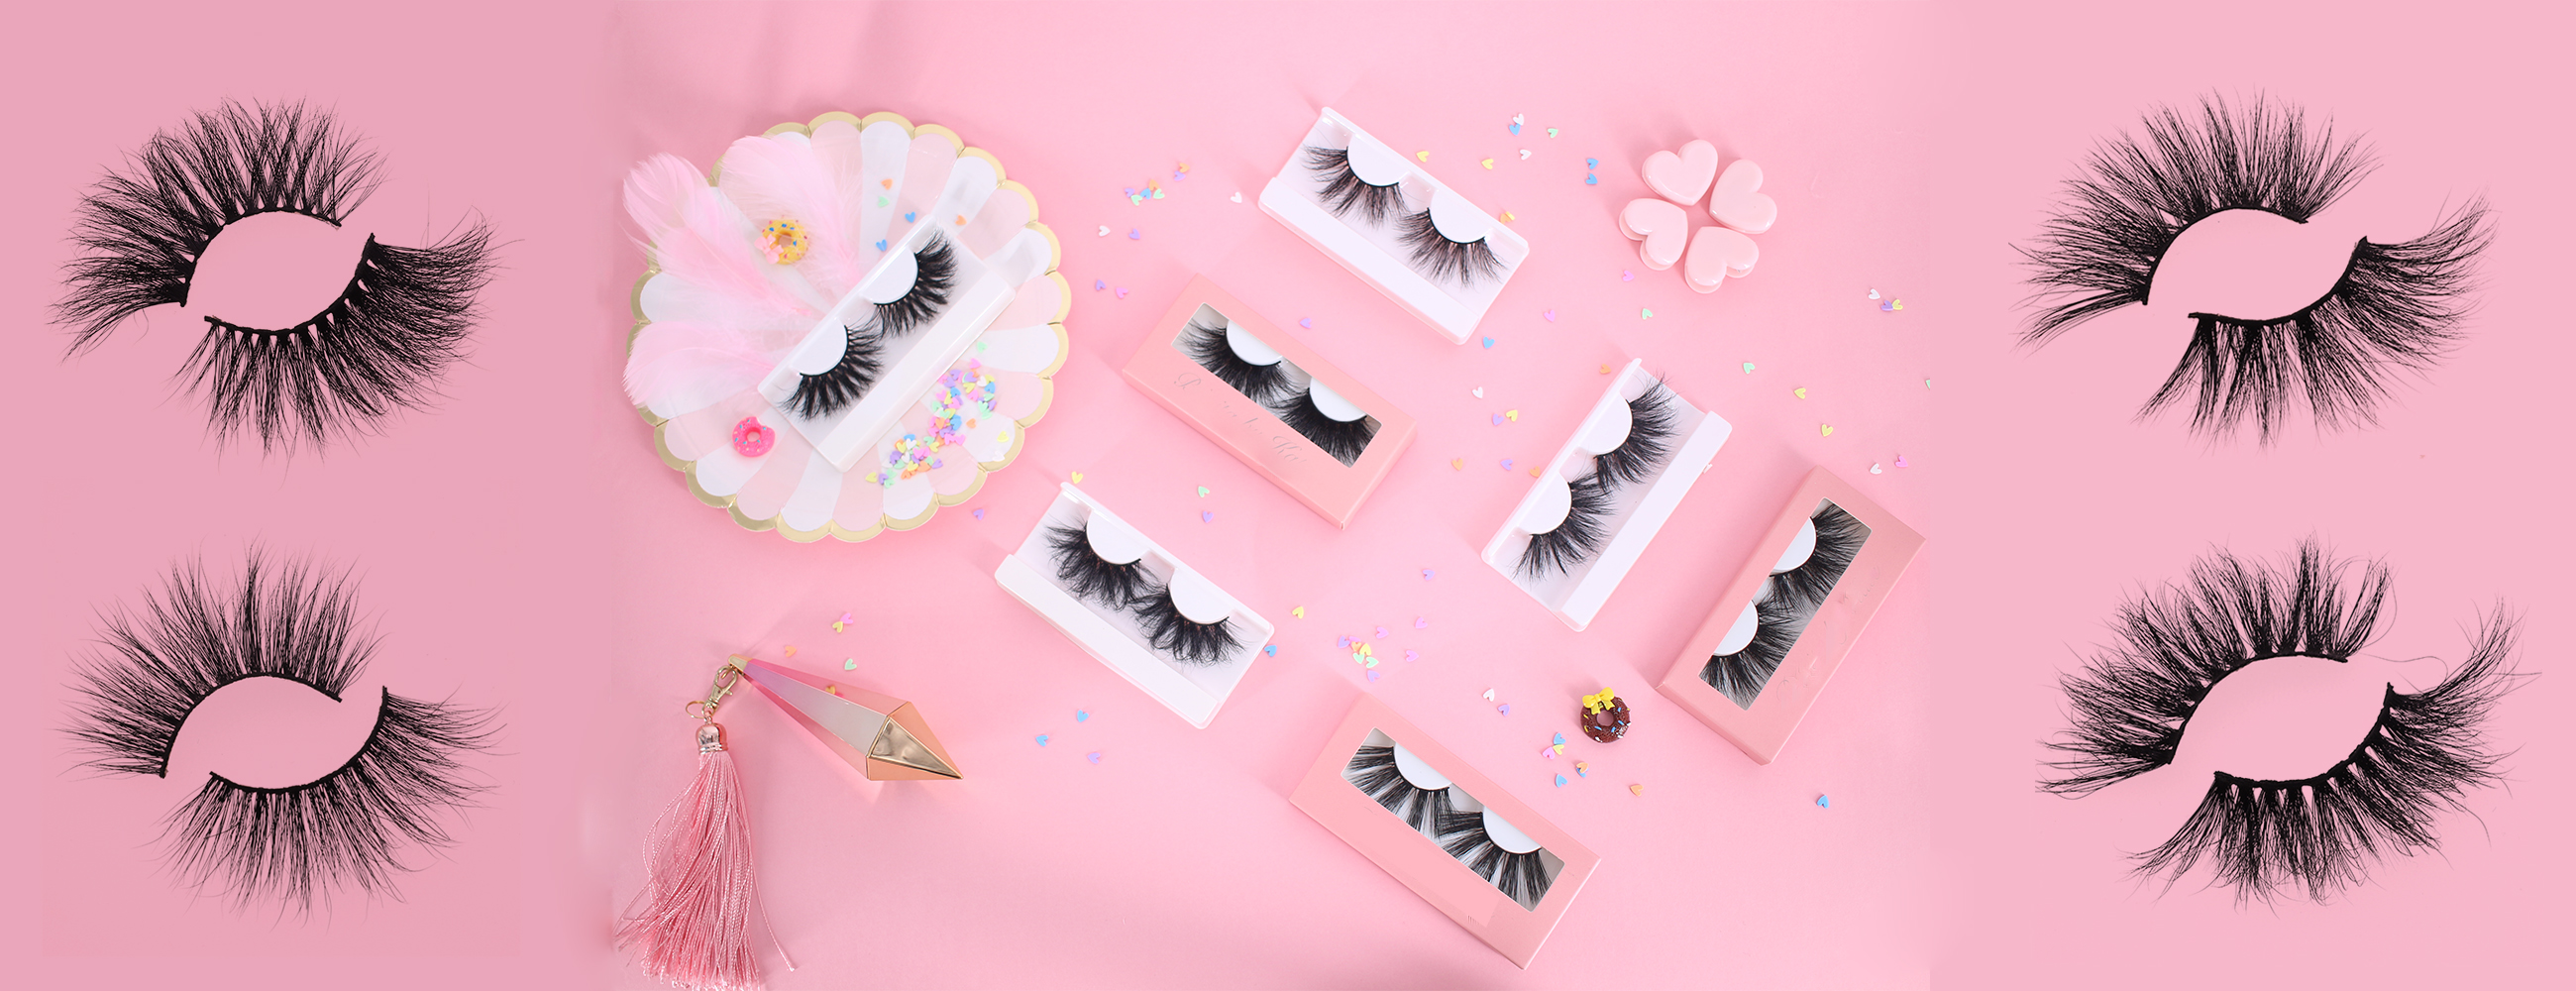 Lash vendors wholesale 3D lashes 25mm real mink eyelashes with cheap price